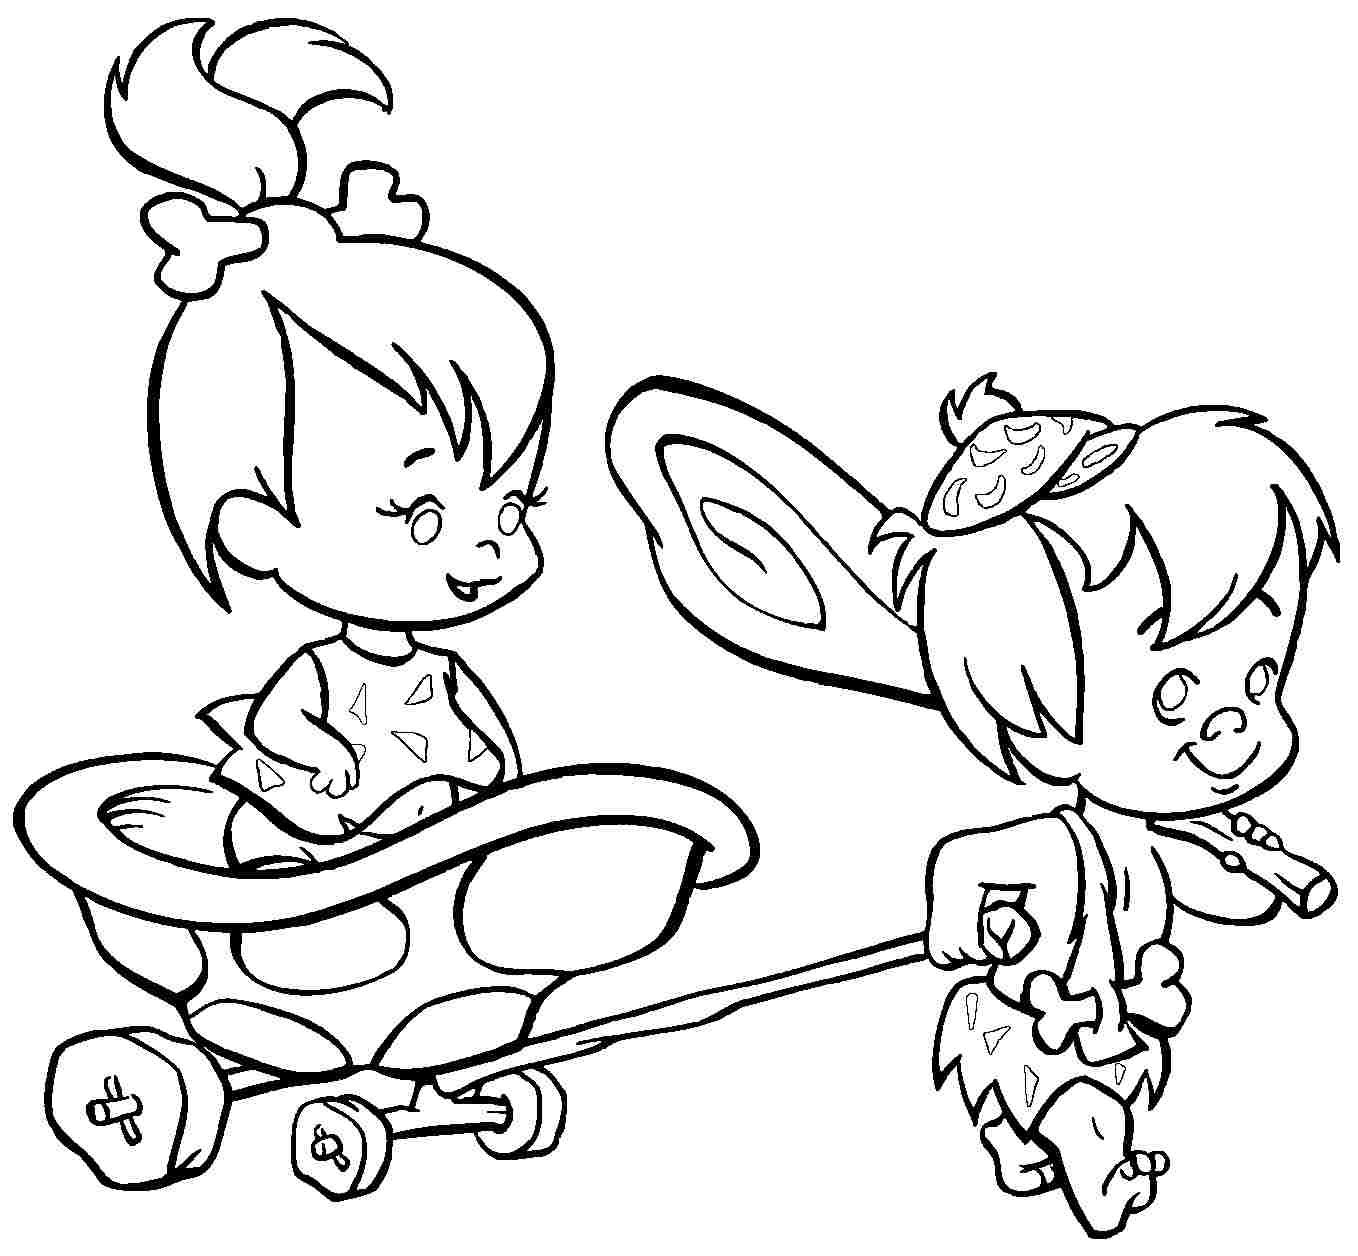 Pebbles And Bambam Coloring Pages Download And Print For Free Cartoon Coloring Pages Disney Coloring Pages Coloring Books